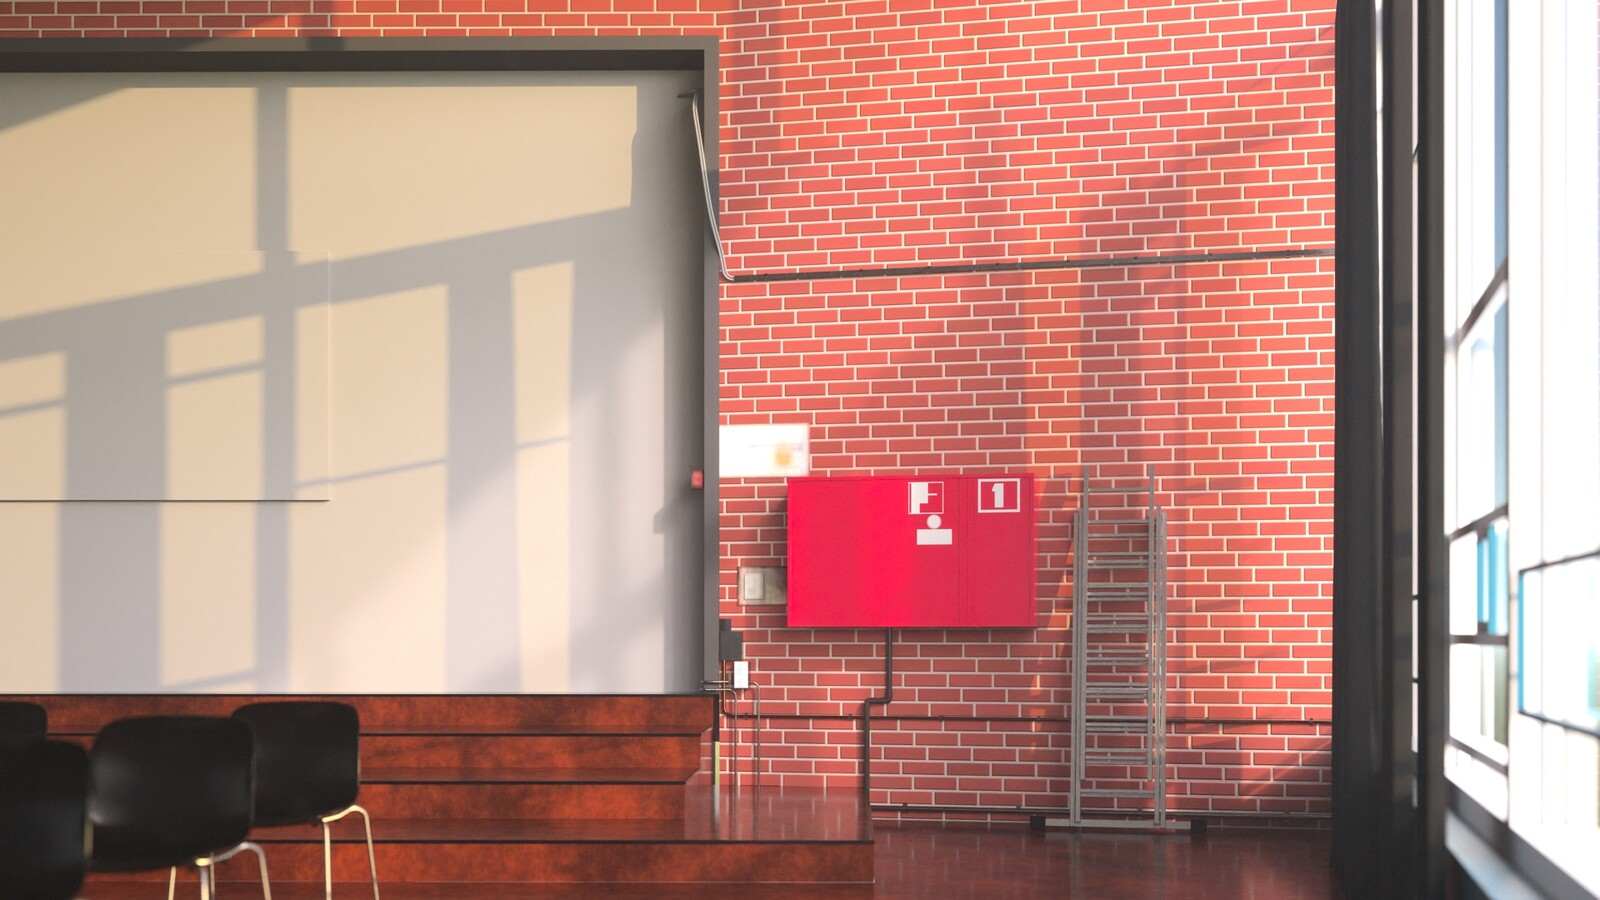 SketchUp 2021 + Thea Render V3 Broedplaats LELY (The Lely Incubator) Auditorium Amsterdam Showroom-Scene 12 17m10s HD1080 1024sp